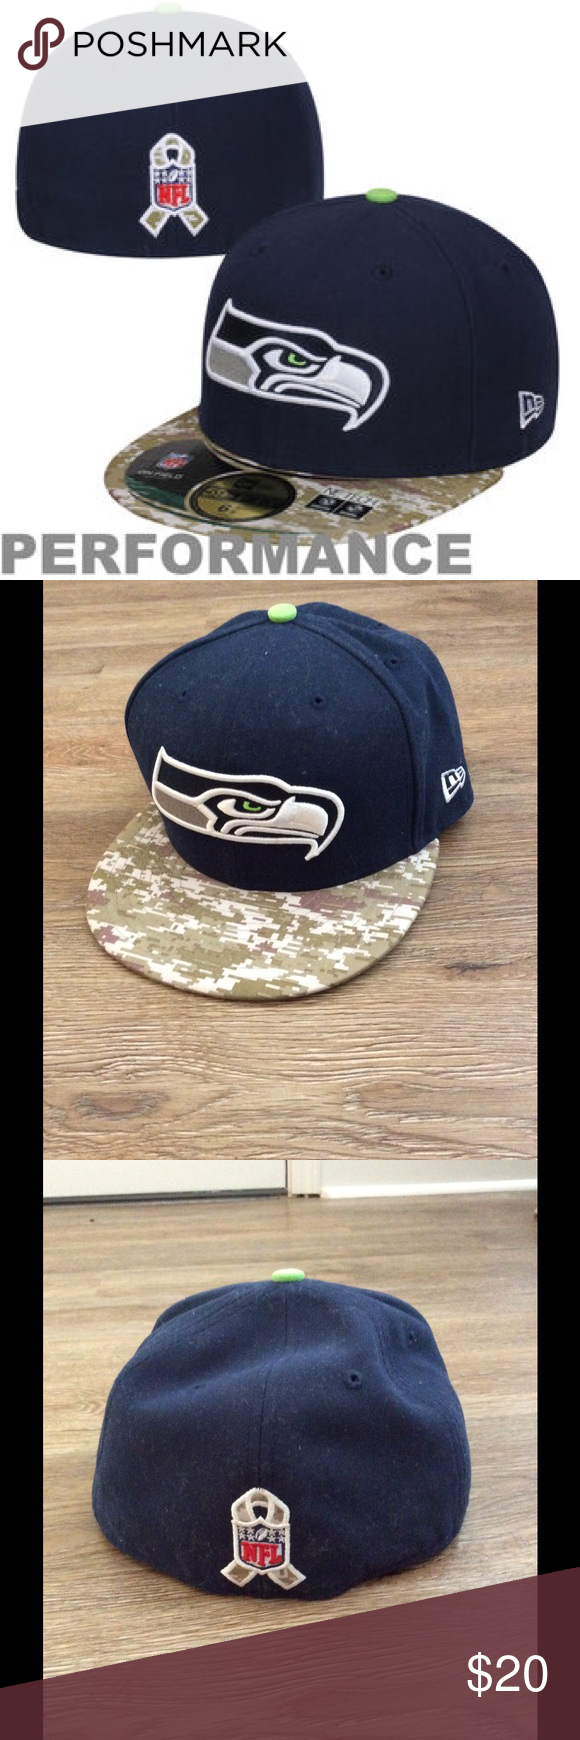 cf399caed fitted Seahawks hat with digital camo bill This was the Veterans Day hat I believe  for